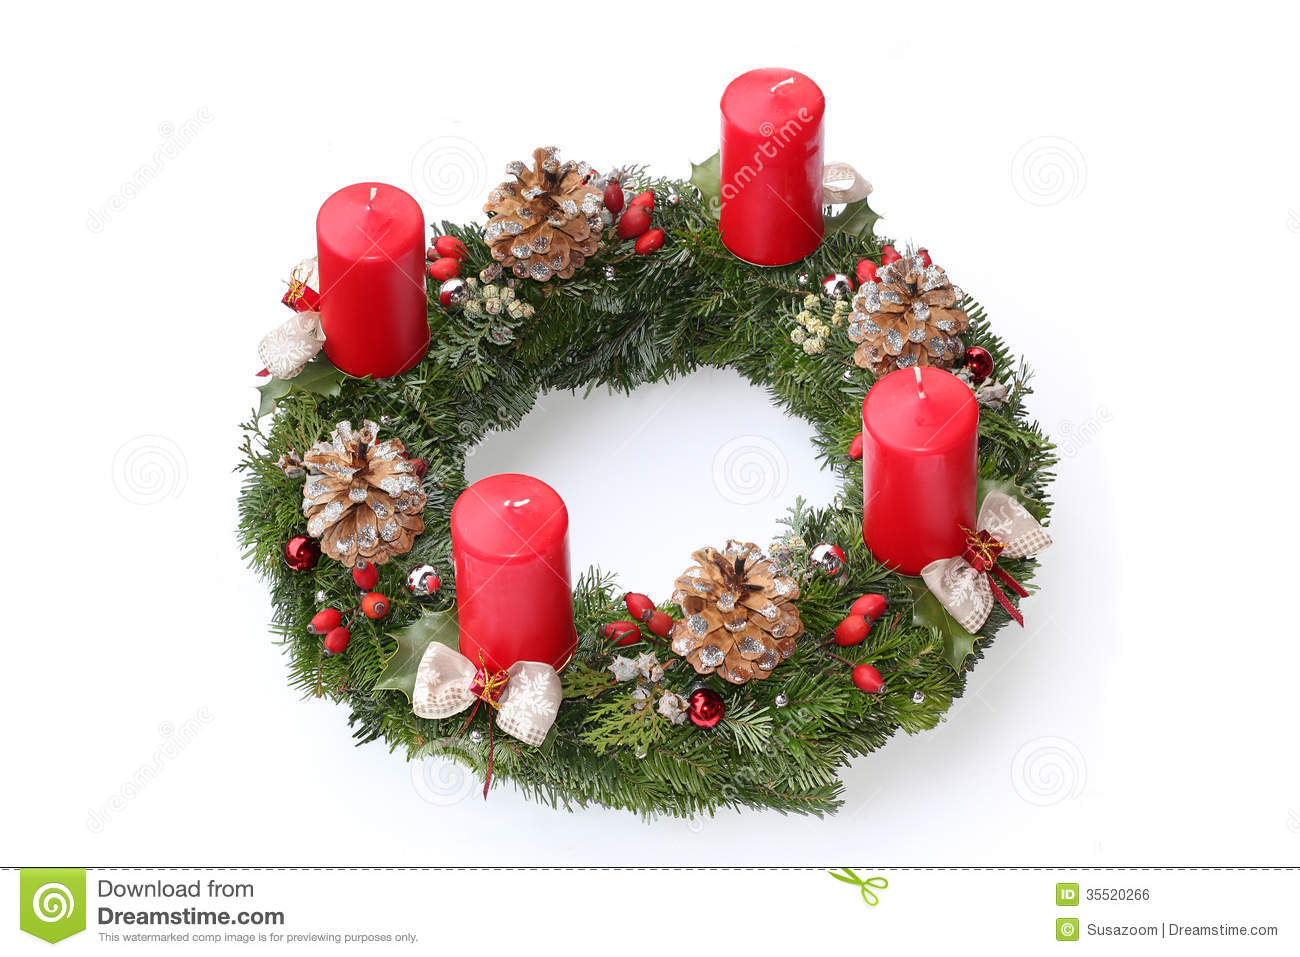 Christmas Wreath Ideas Advent Wreath With Red Candles Natural Decoration Stock